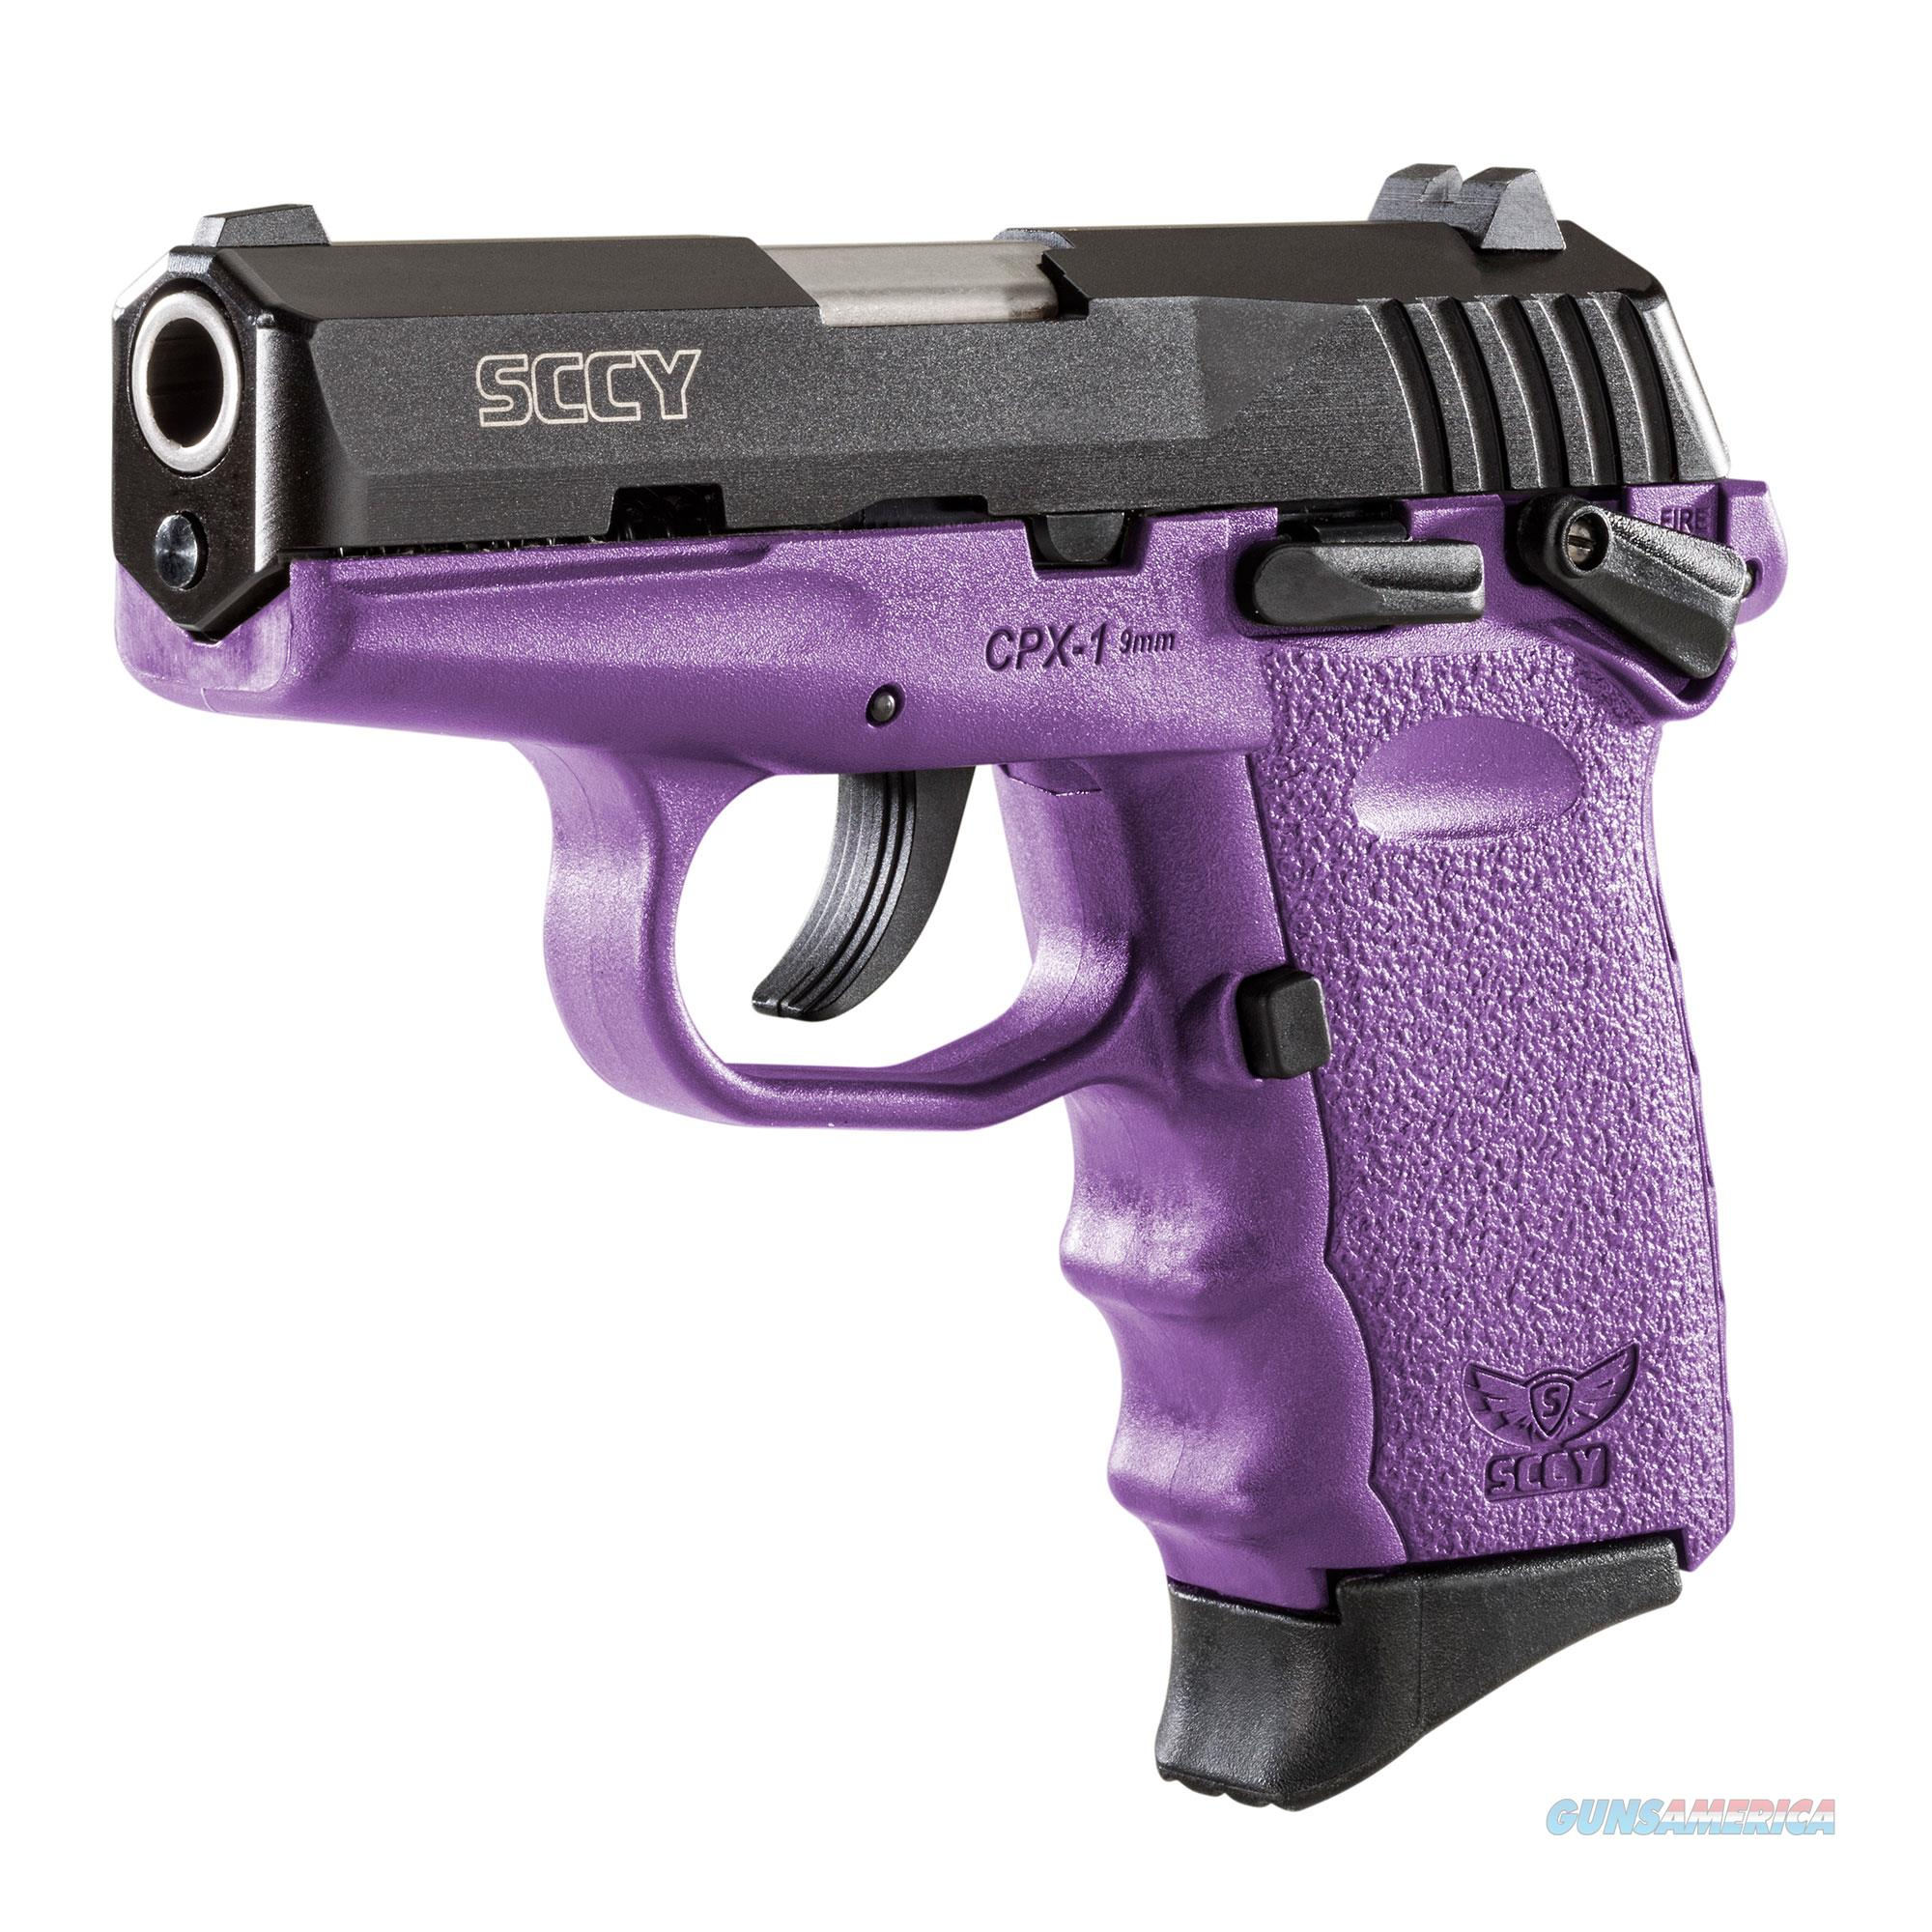 SCCY CPX-1 9mm Auto Pistol with Safety – Purple/Black - New in Box  Guns > Pistols > SCCY Pistols > CPX1